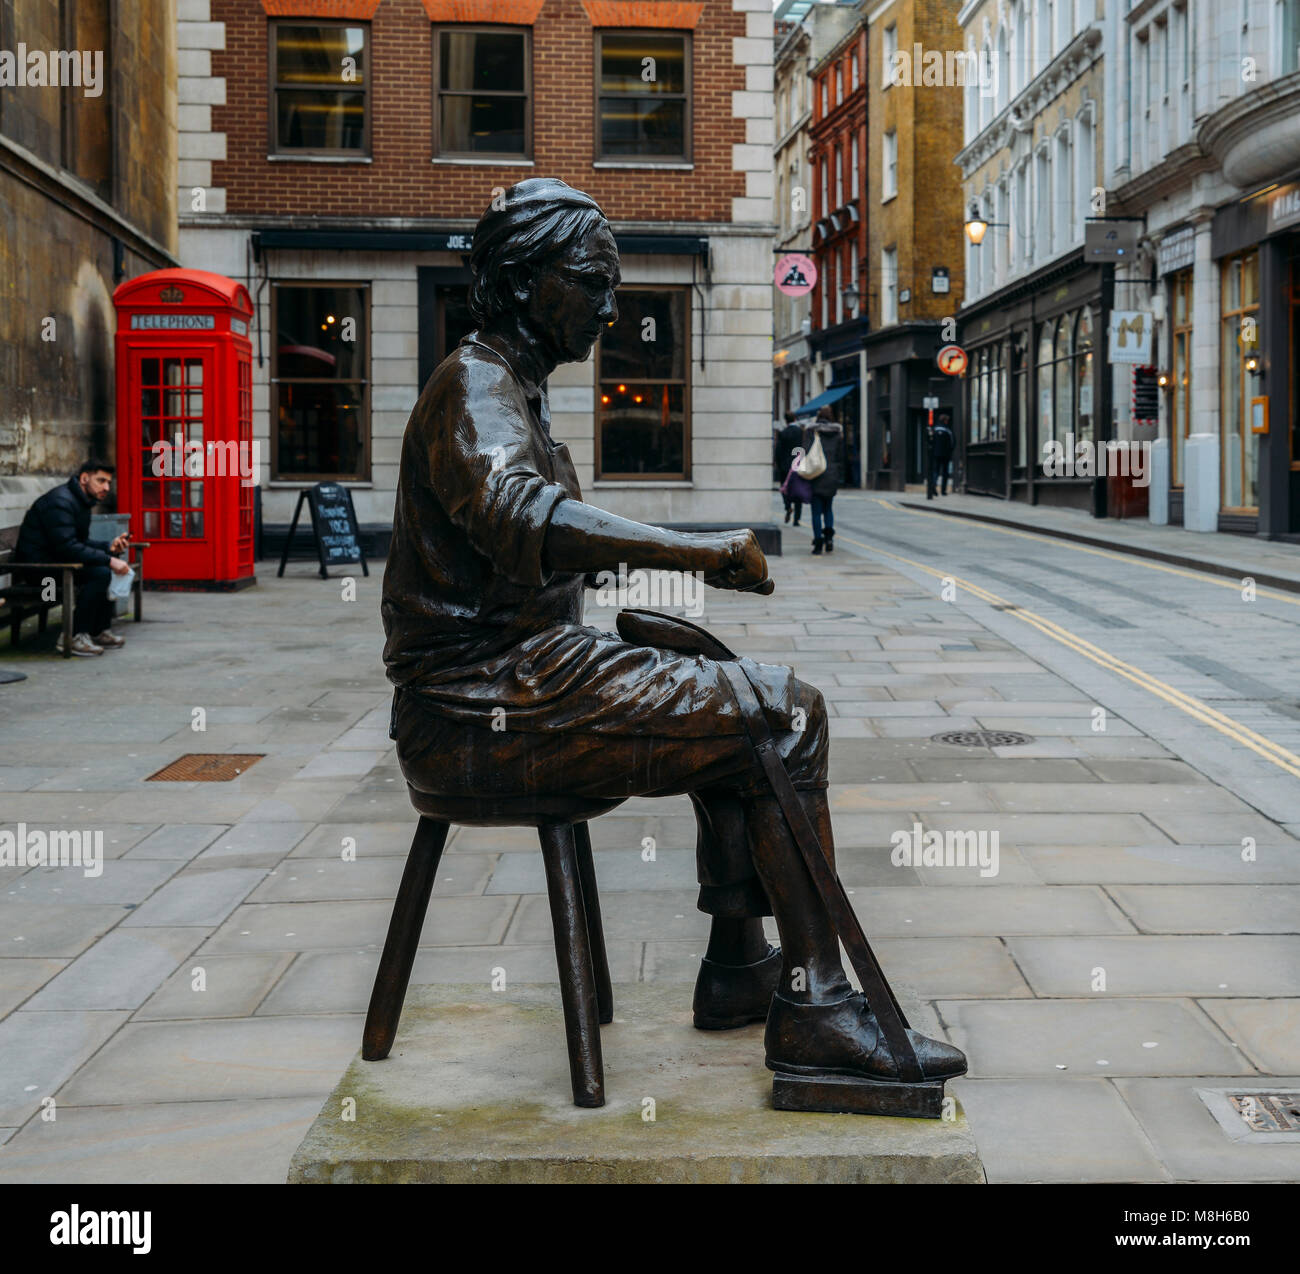 Cordwainer statue erected in 2002 is situated on the pavement in Watling Street - Stock Image